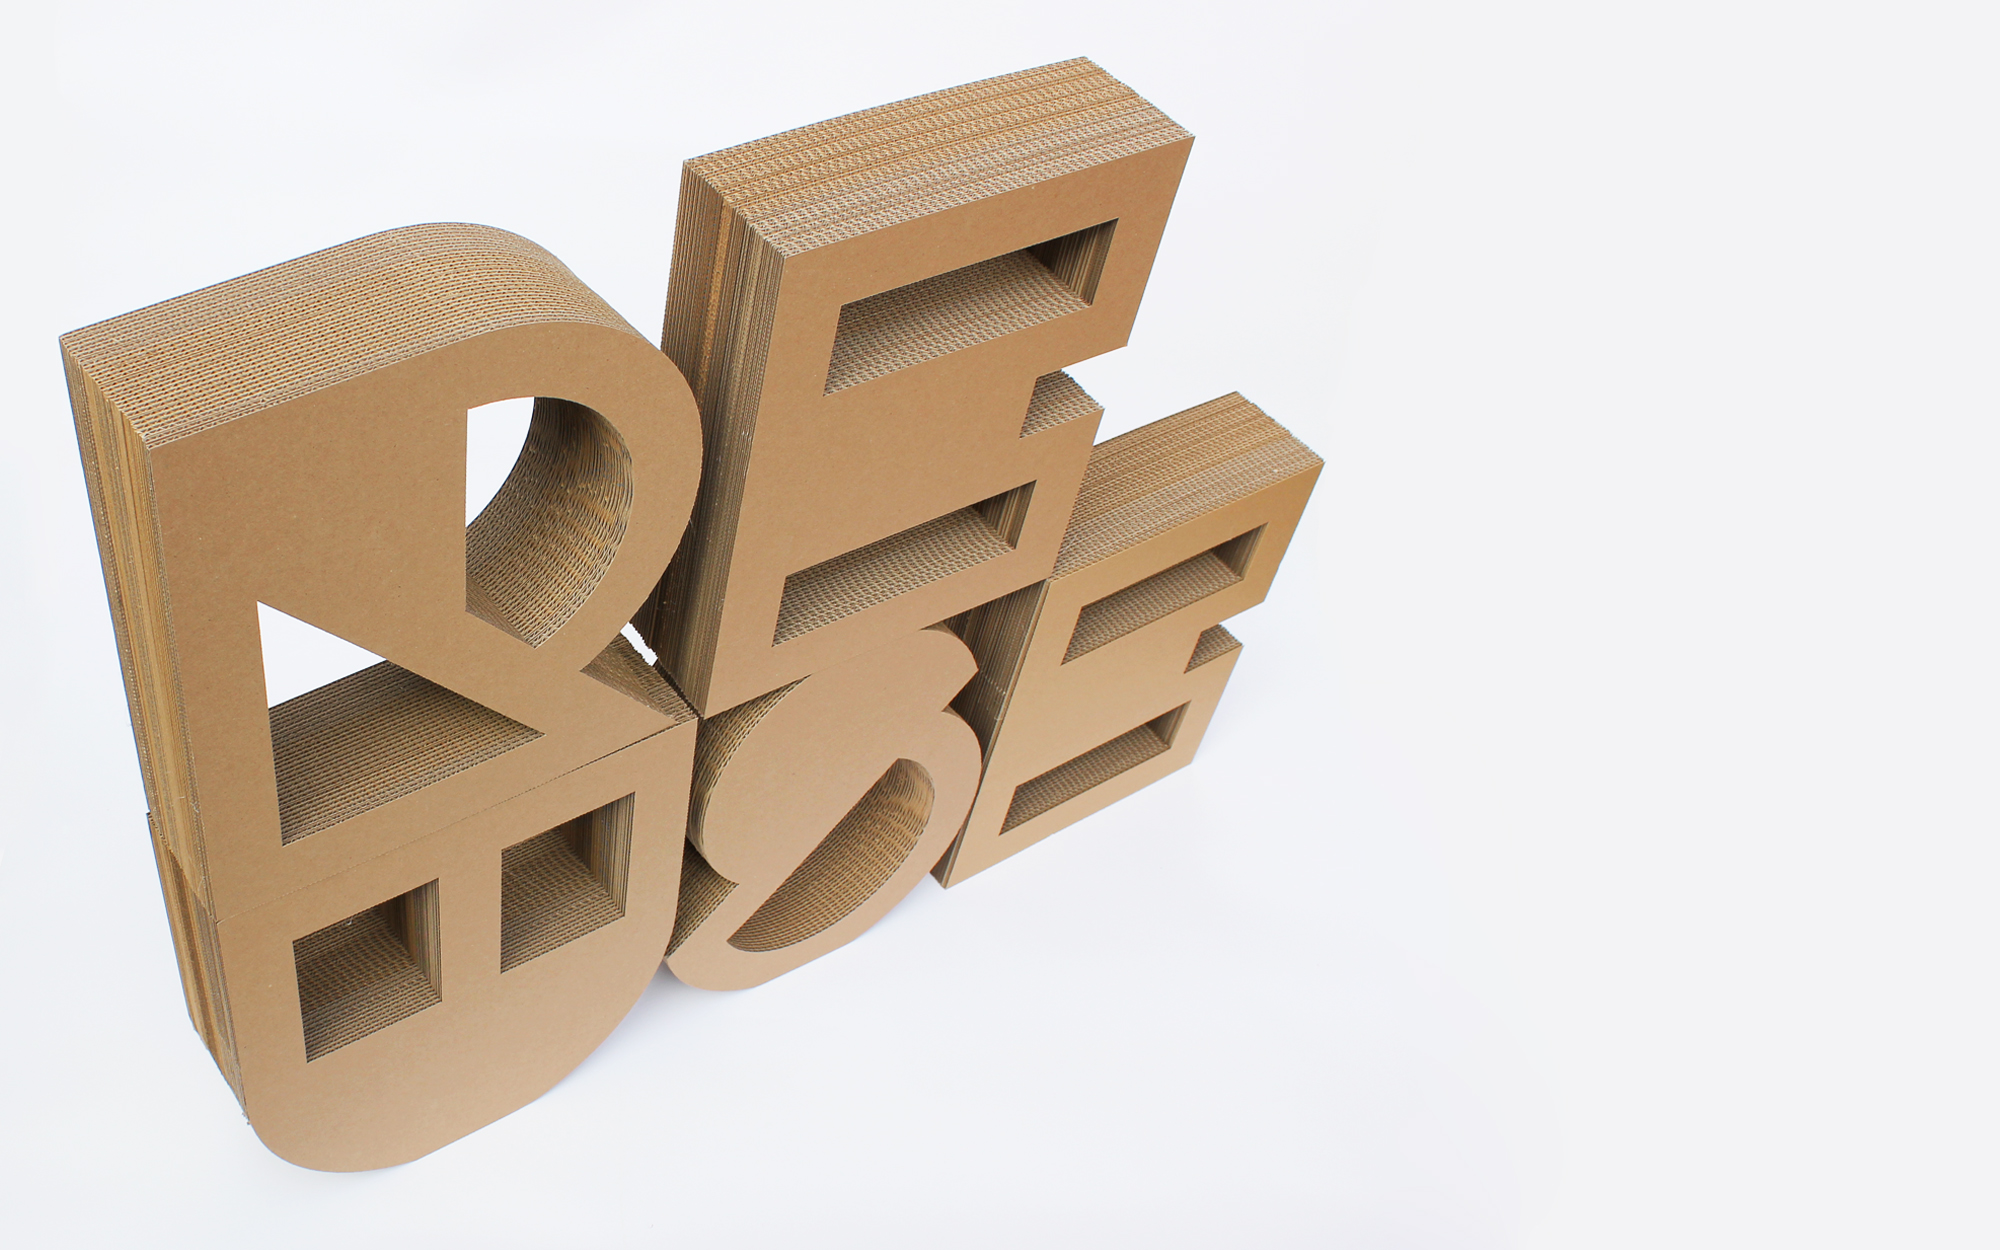 reuse_type_cardboard_typography_matthew_pomorski_graphic_designer_kent_2